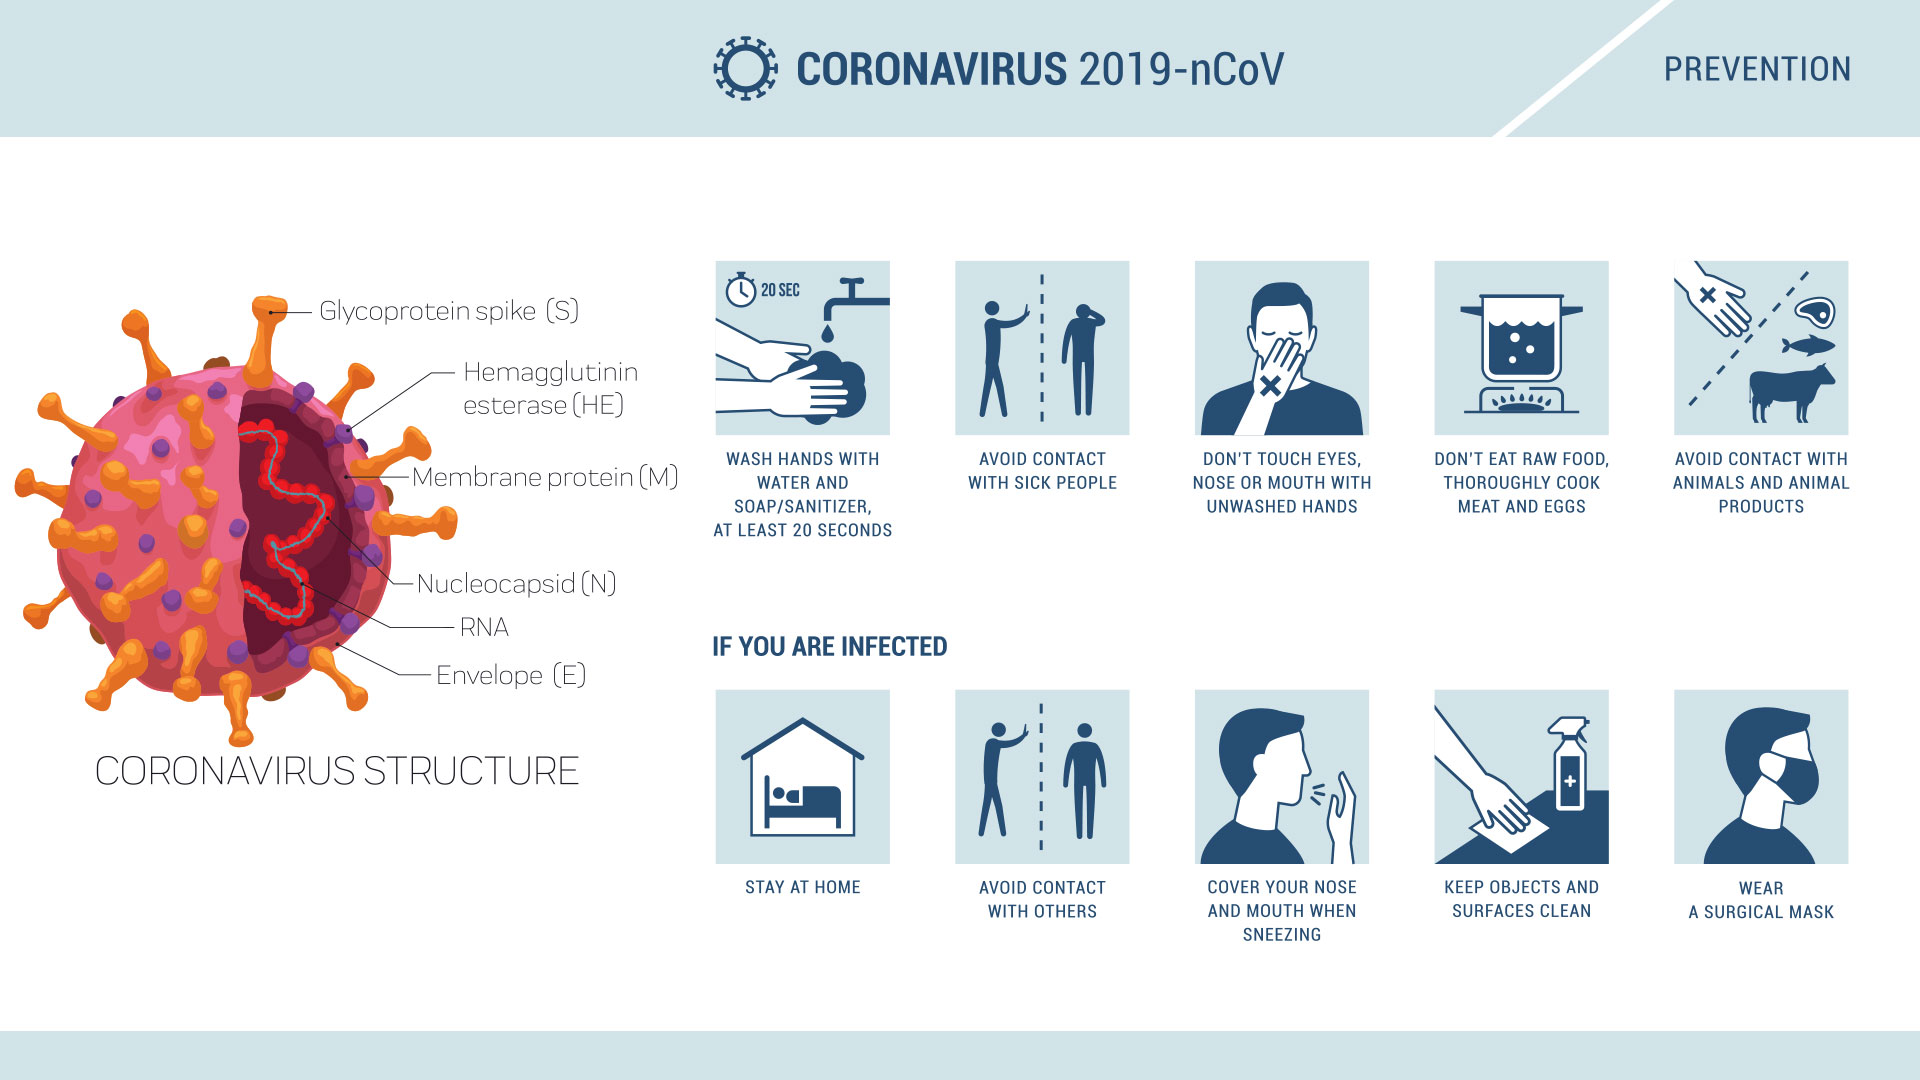 Coronavirus Covid-19 and Impact on Business and Supply Chains